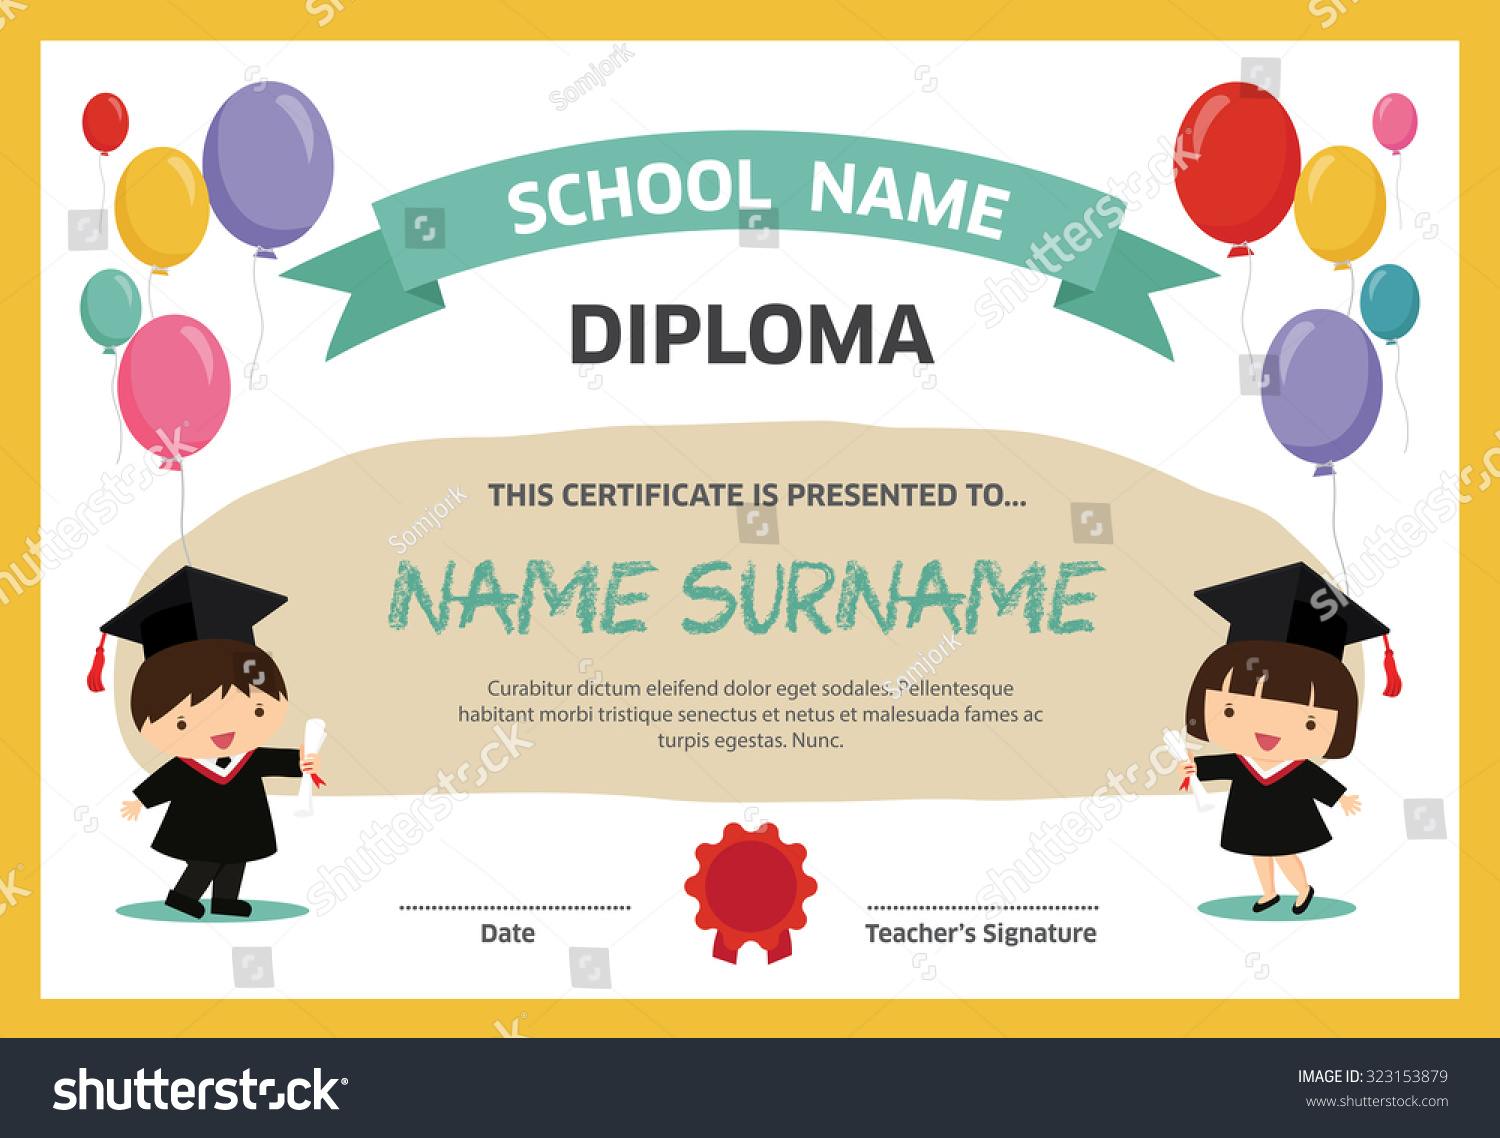 Preschool graduation diploma template images template for Military recall roster template